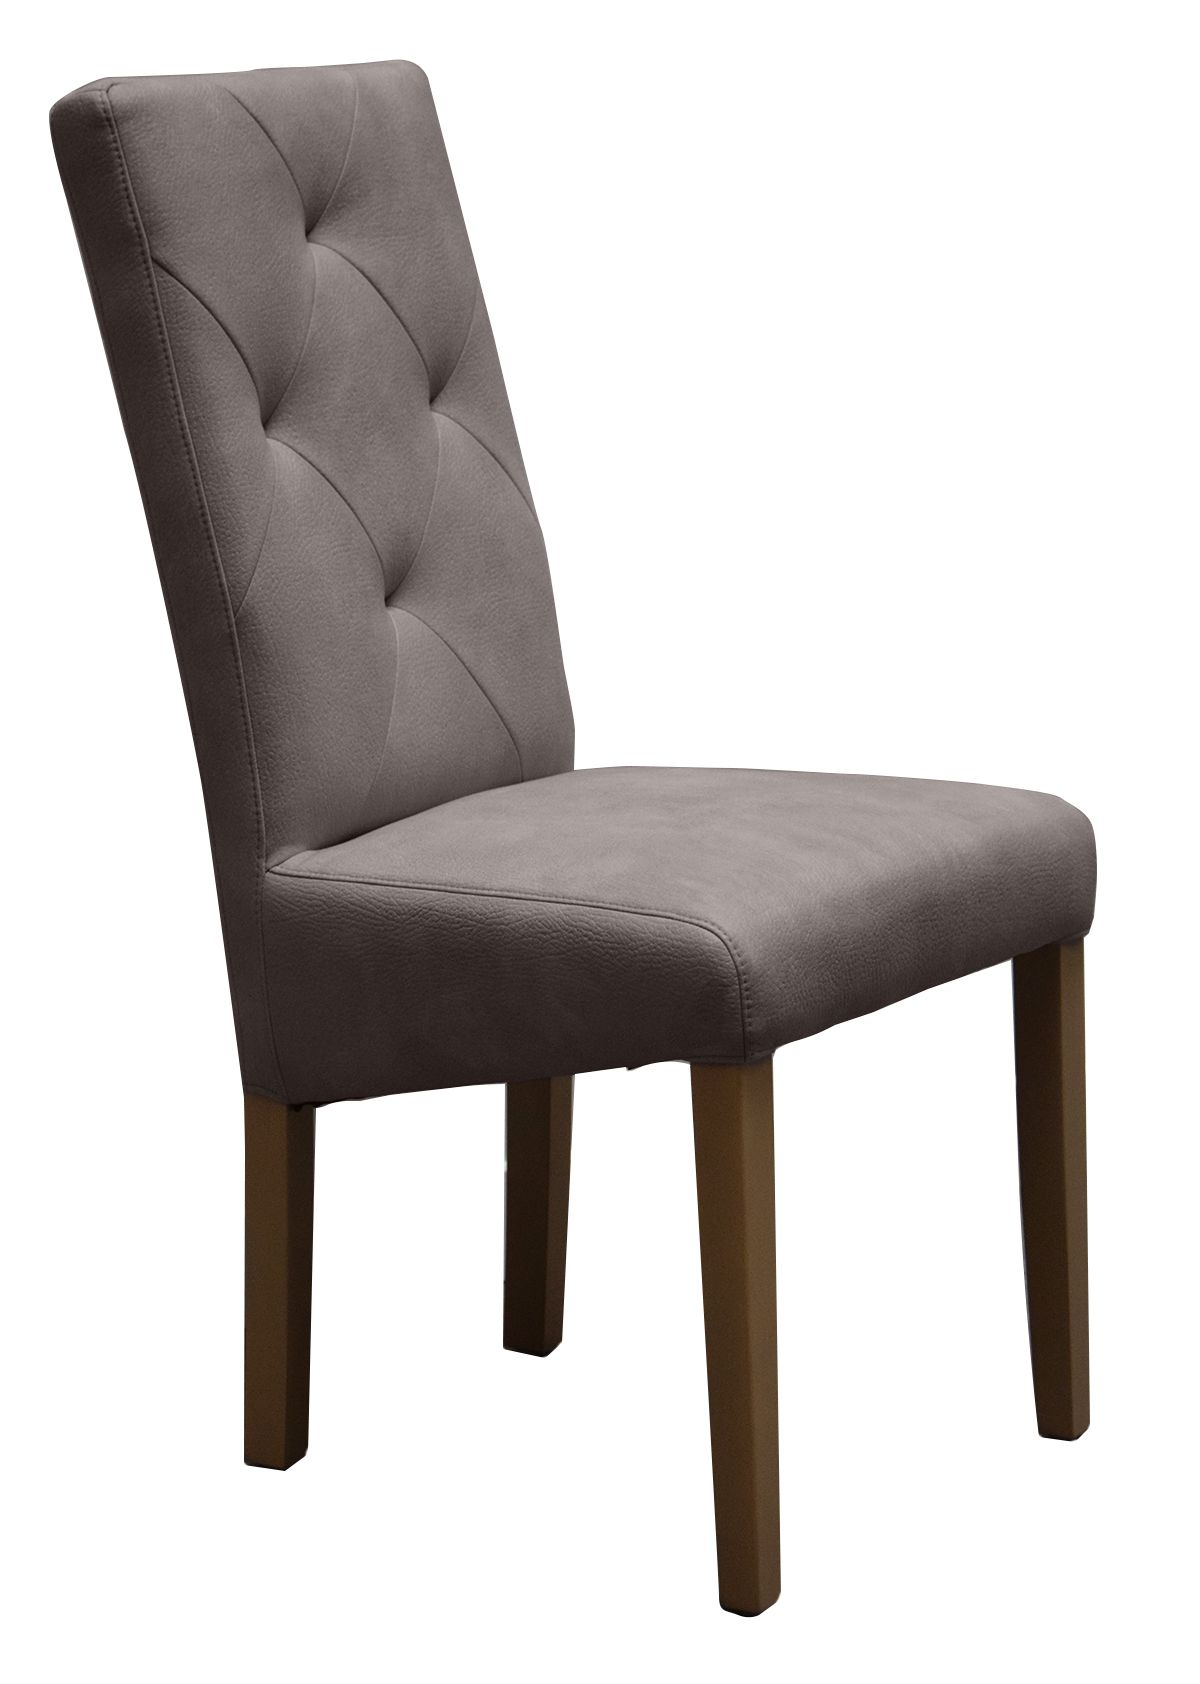 chaise salle a manger taupe capitonnee